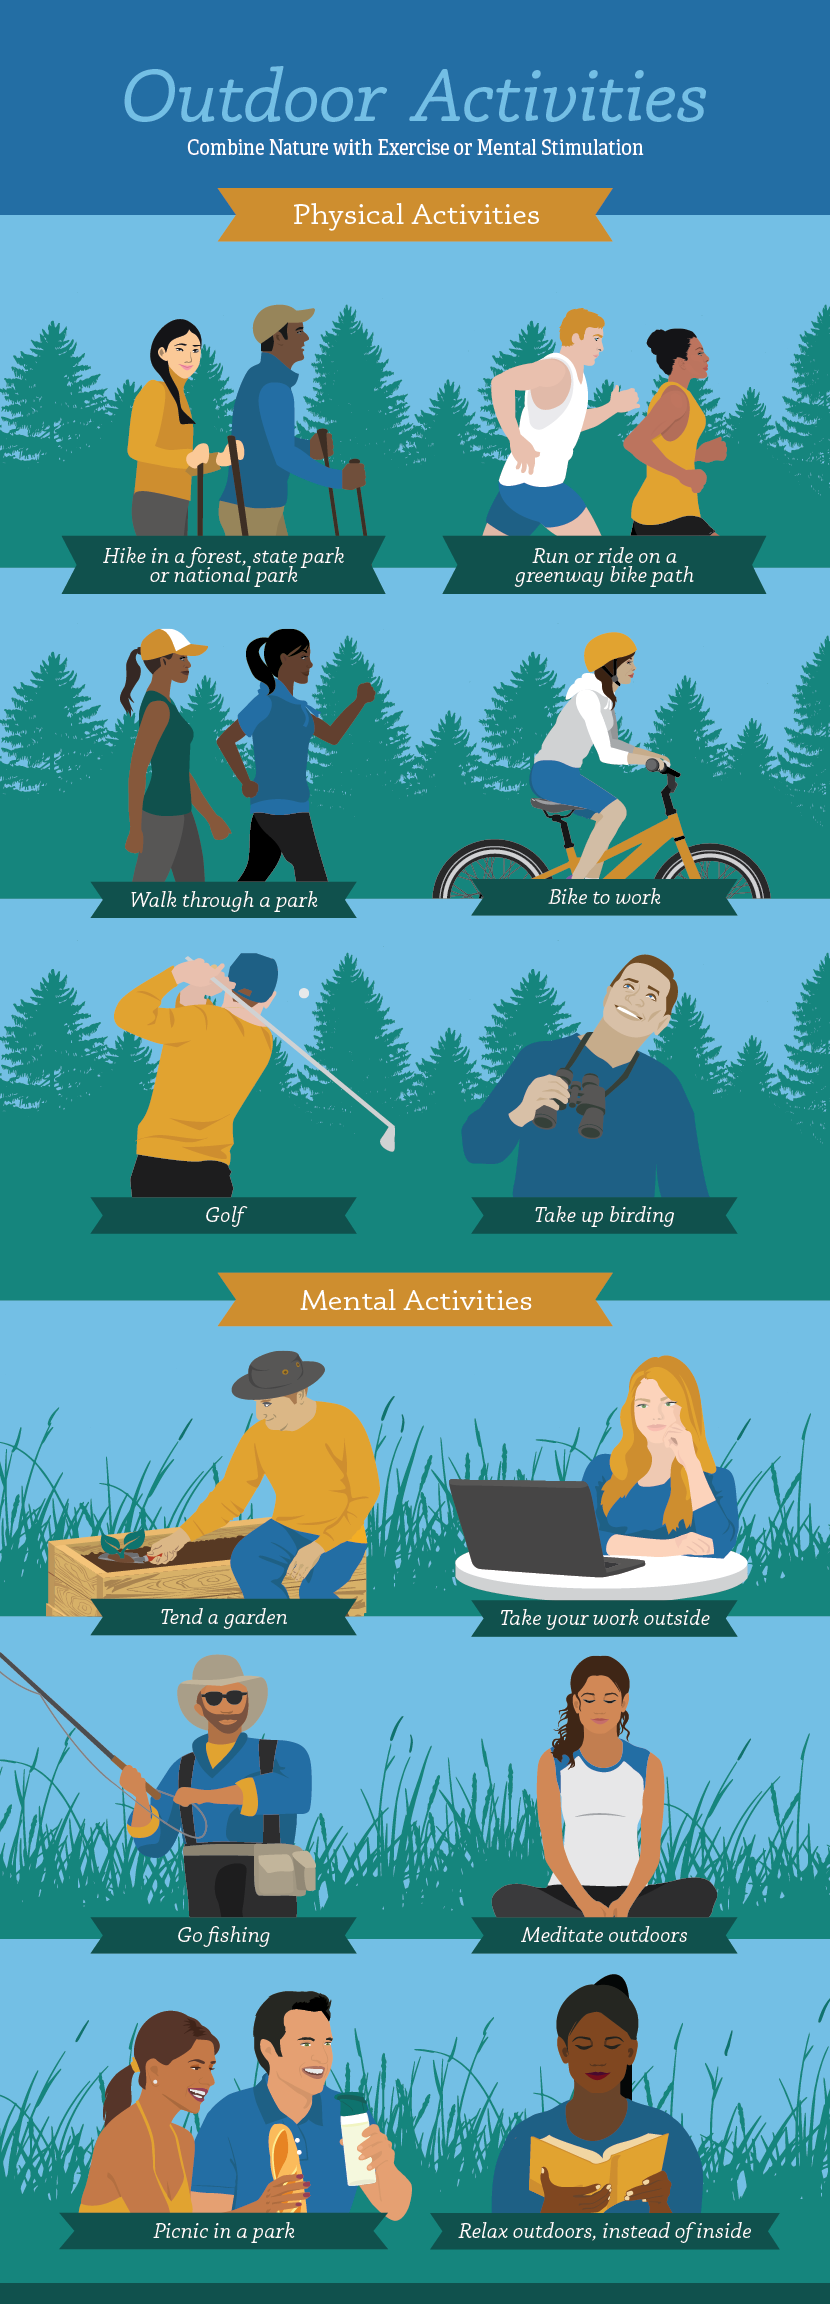 Easy Outdoor Activities - Mental Health Benefits of the Outdoors